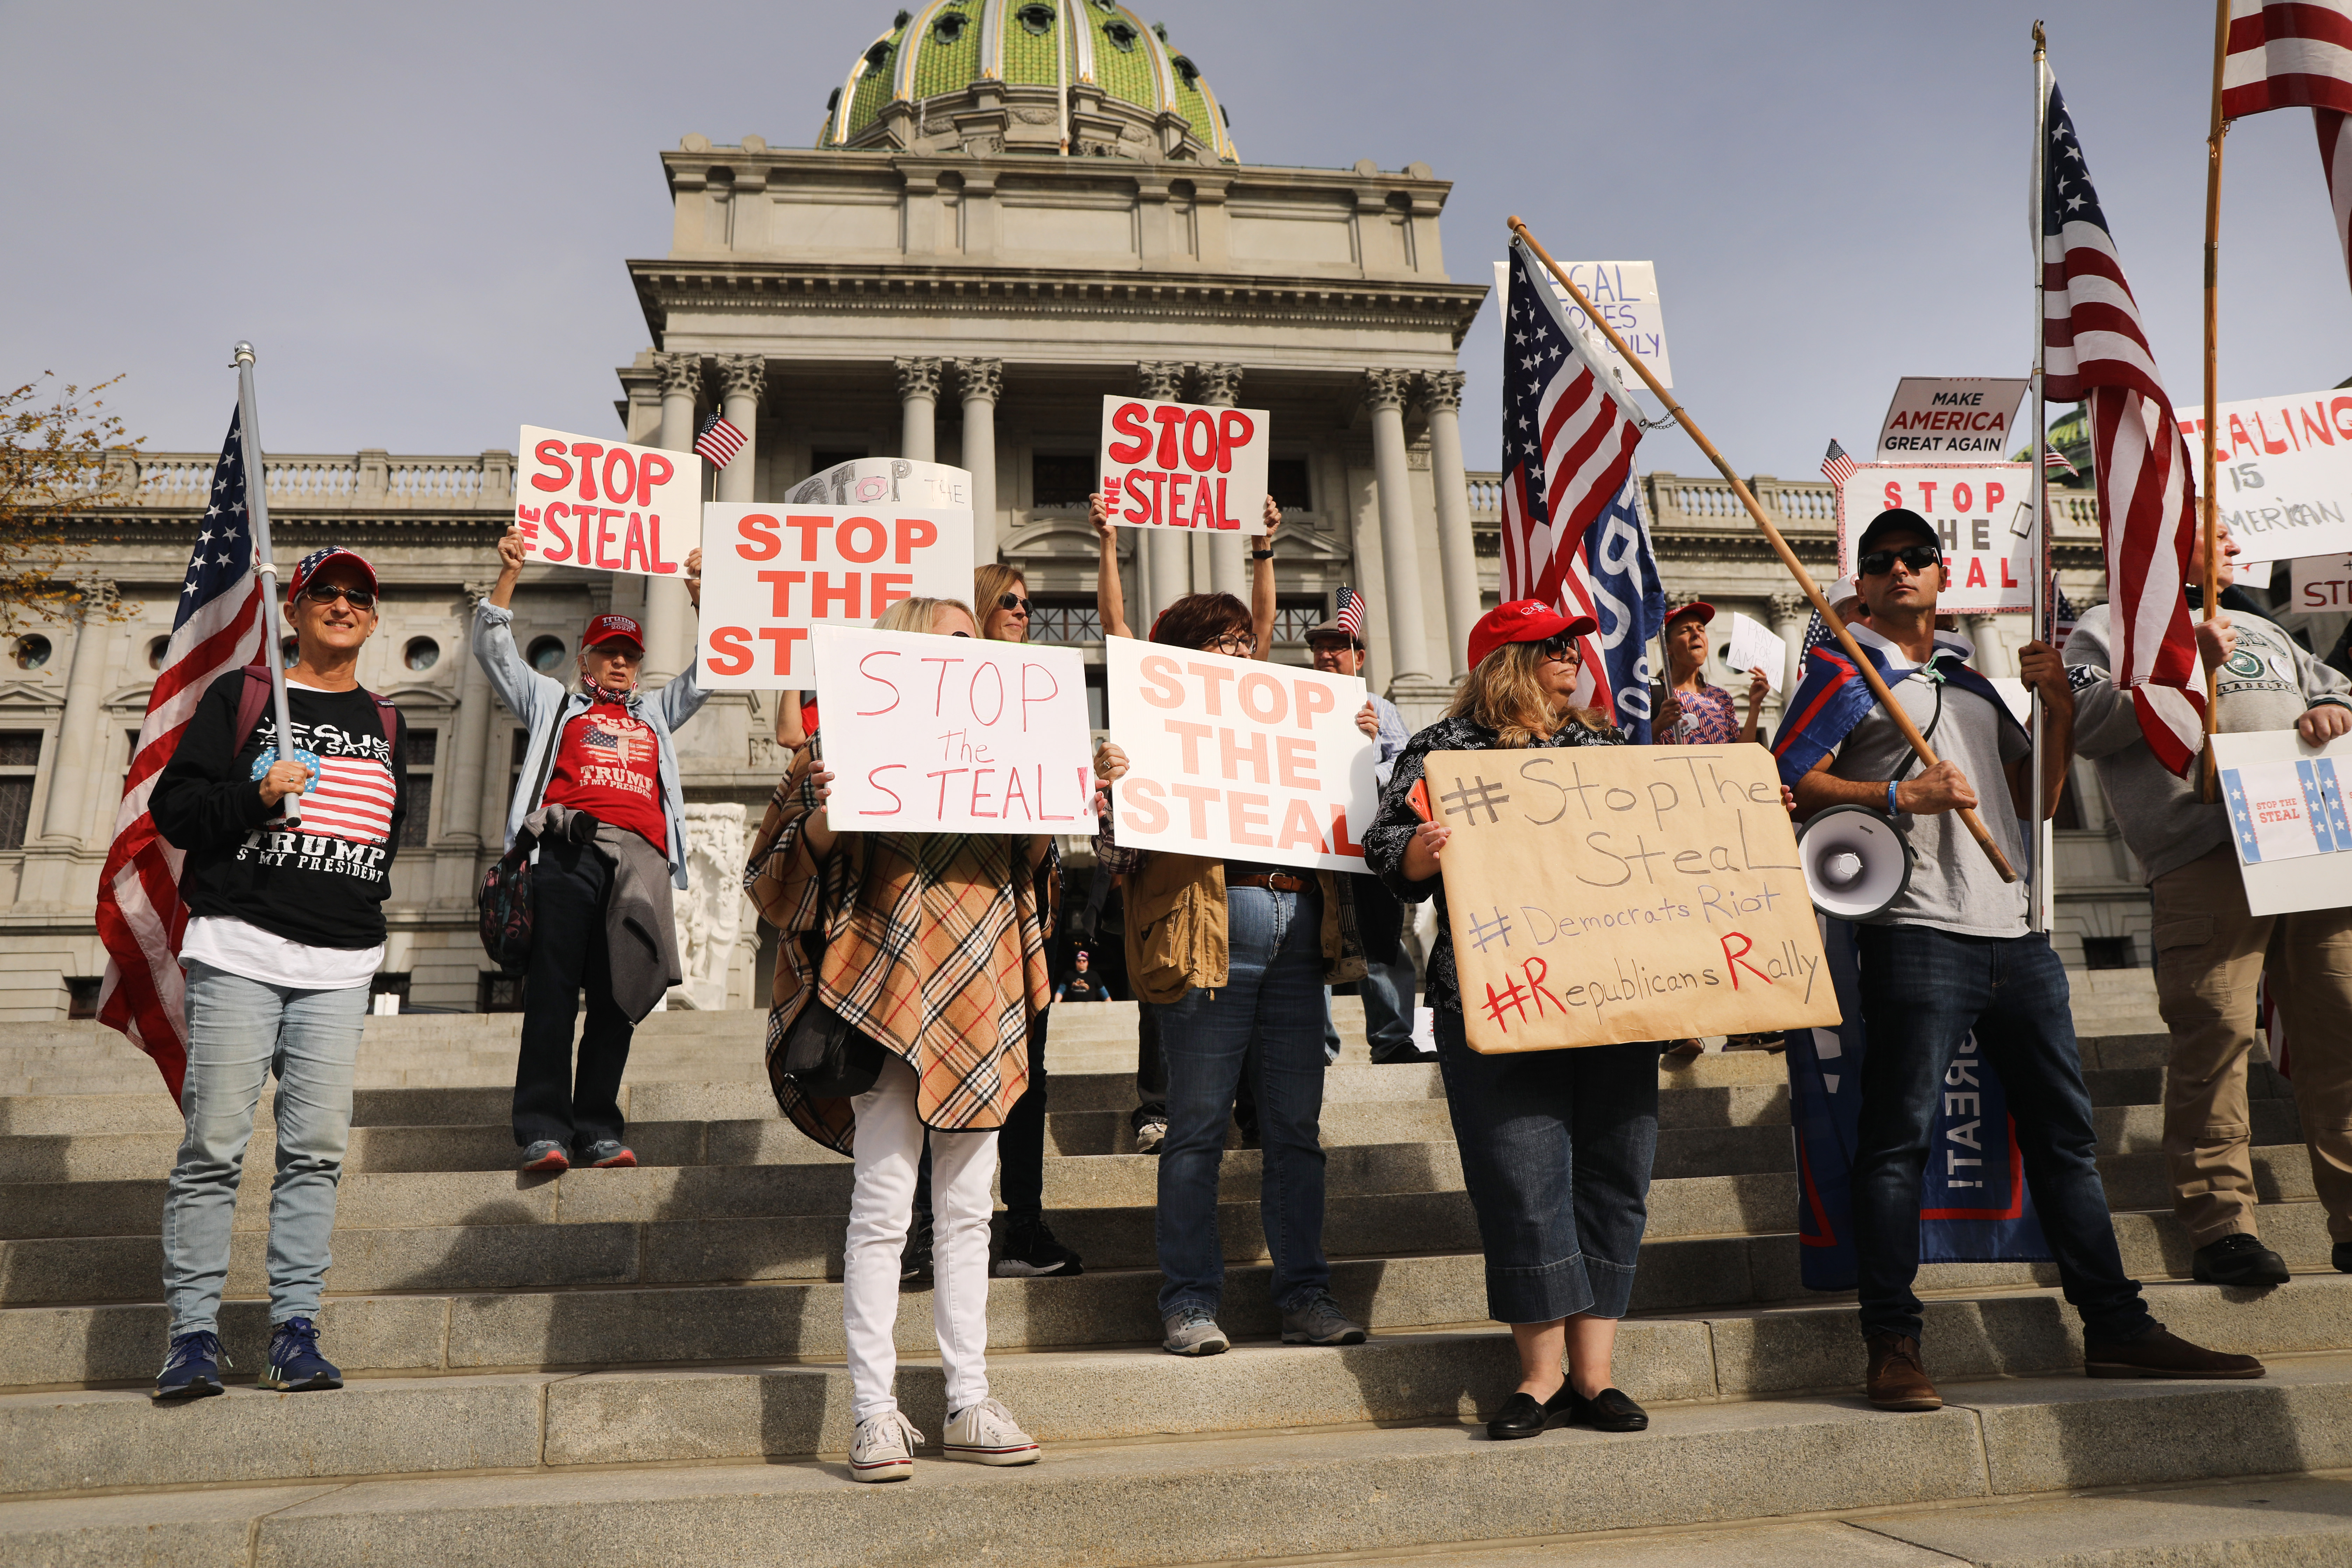 Dozens of people calling for stopping the vote count in Pennsylvania gather on the steps of the State Capital on Nov. 5 in Harrisburg, Penn. as they allege fraud against President Donald Trump.